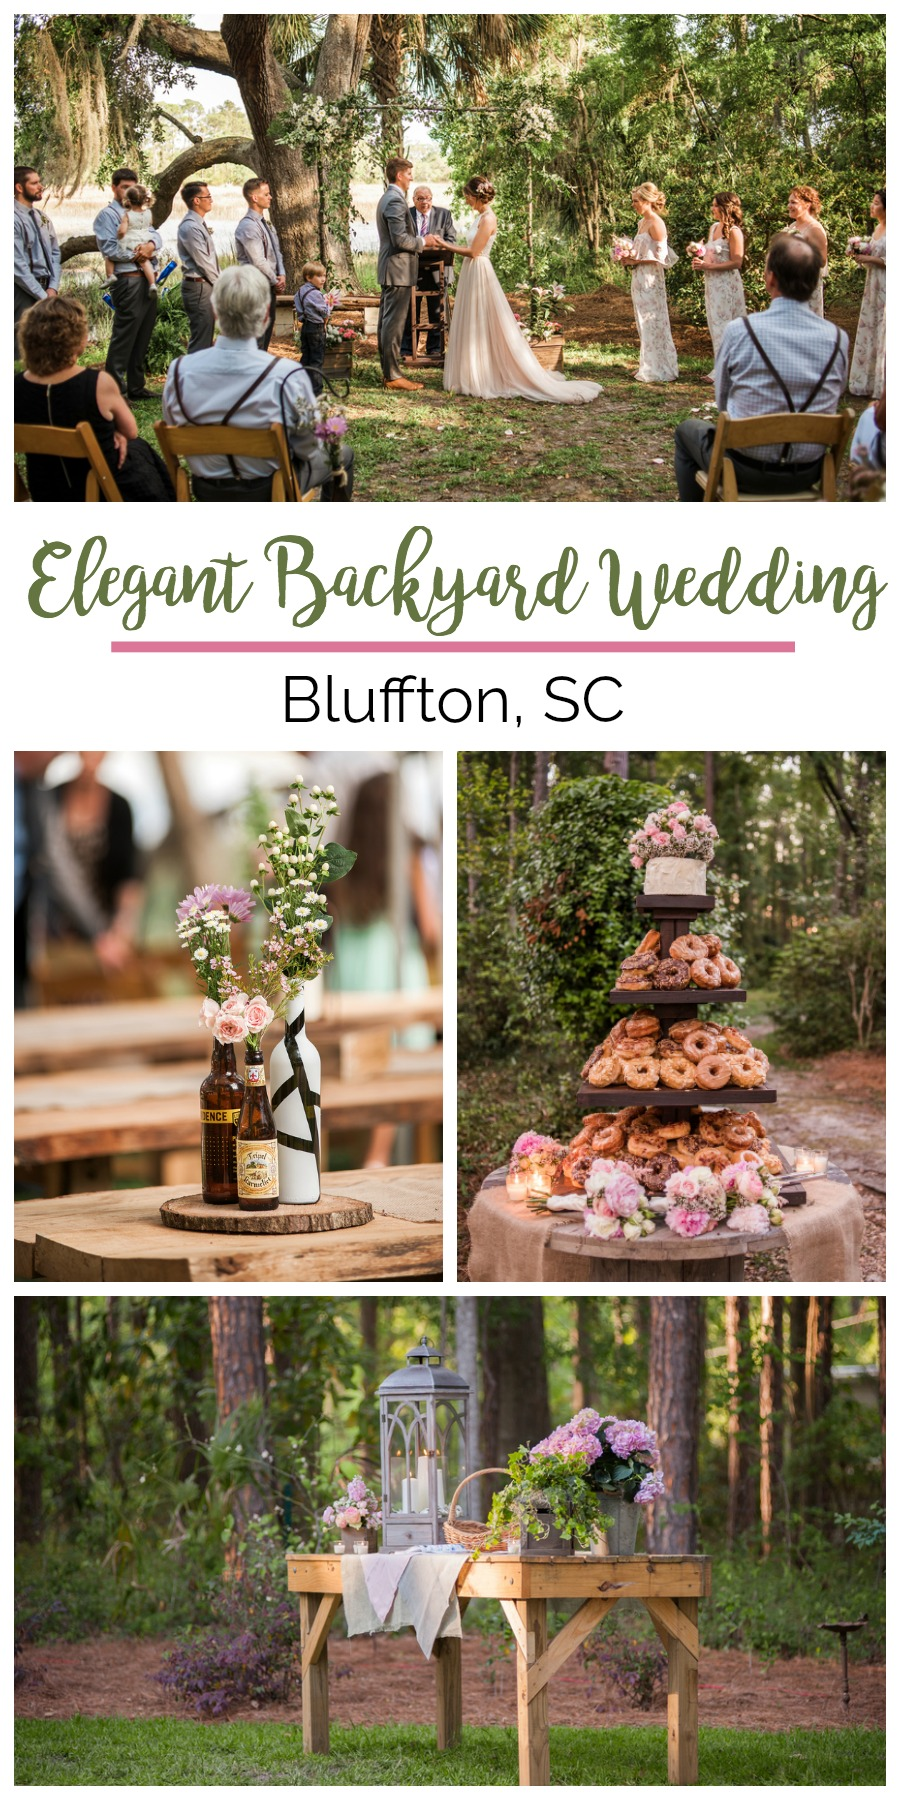 Nikki + Colin: A Lighthearted Backyard Wedding in Bluffton, South Carolina | Palmetto State Weddings